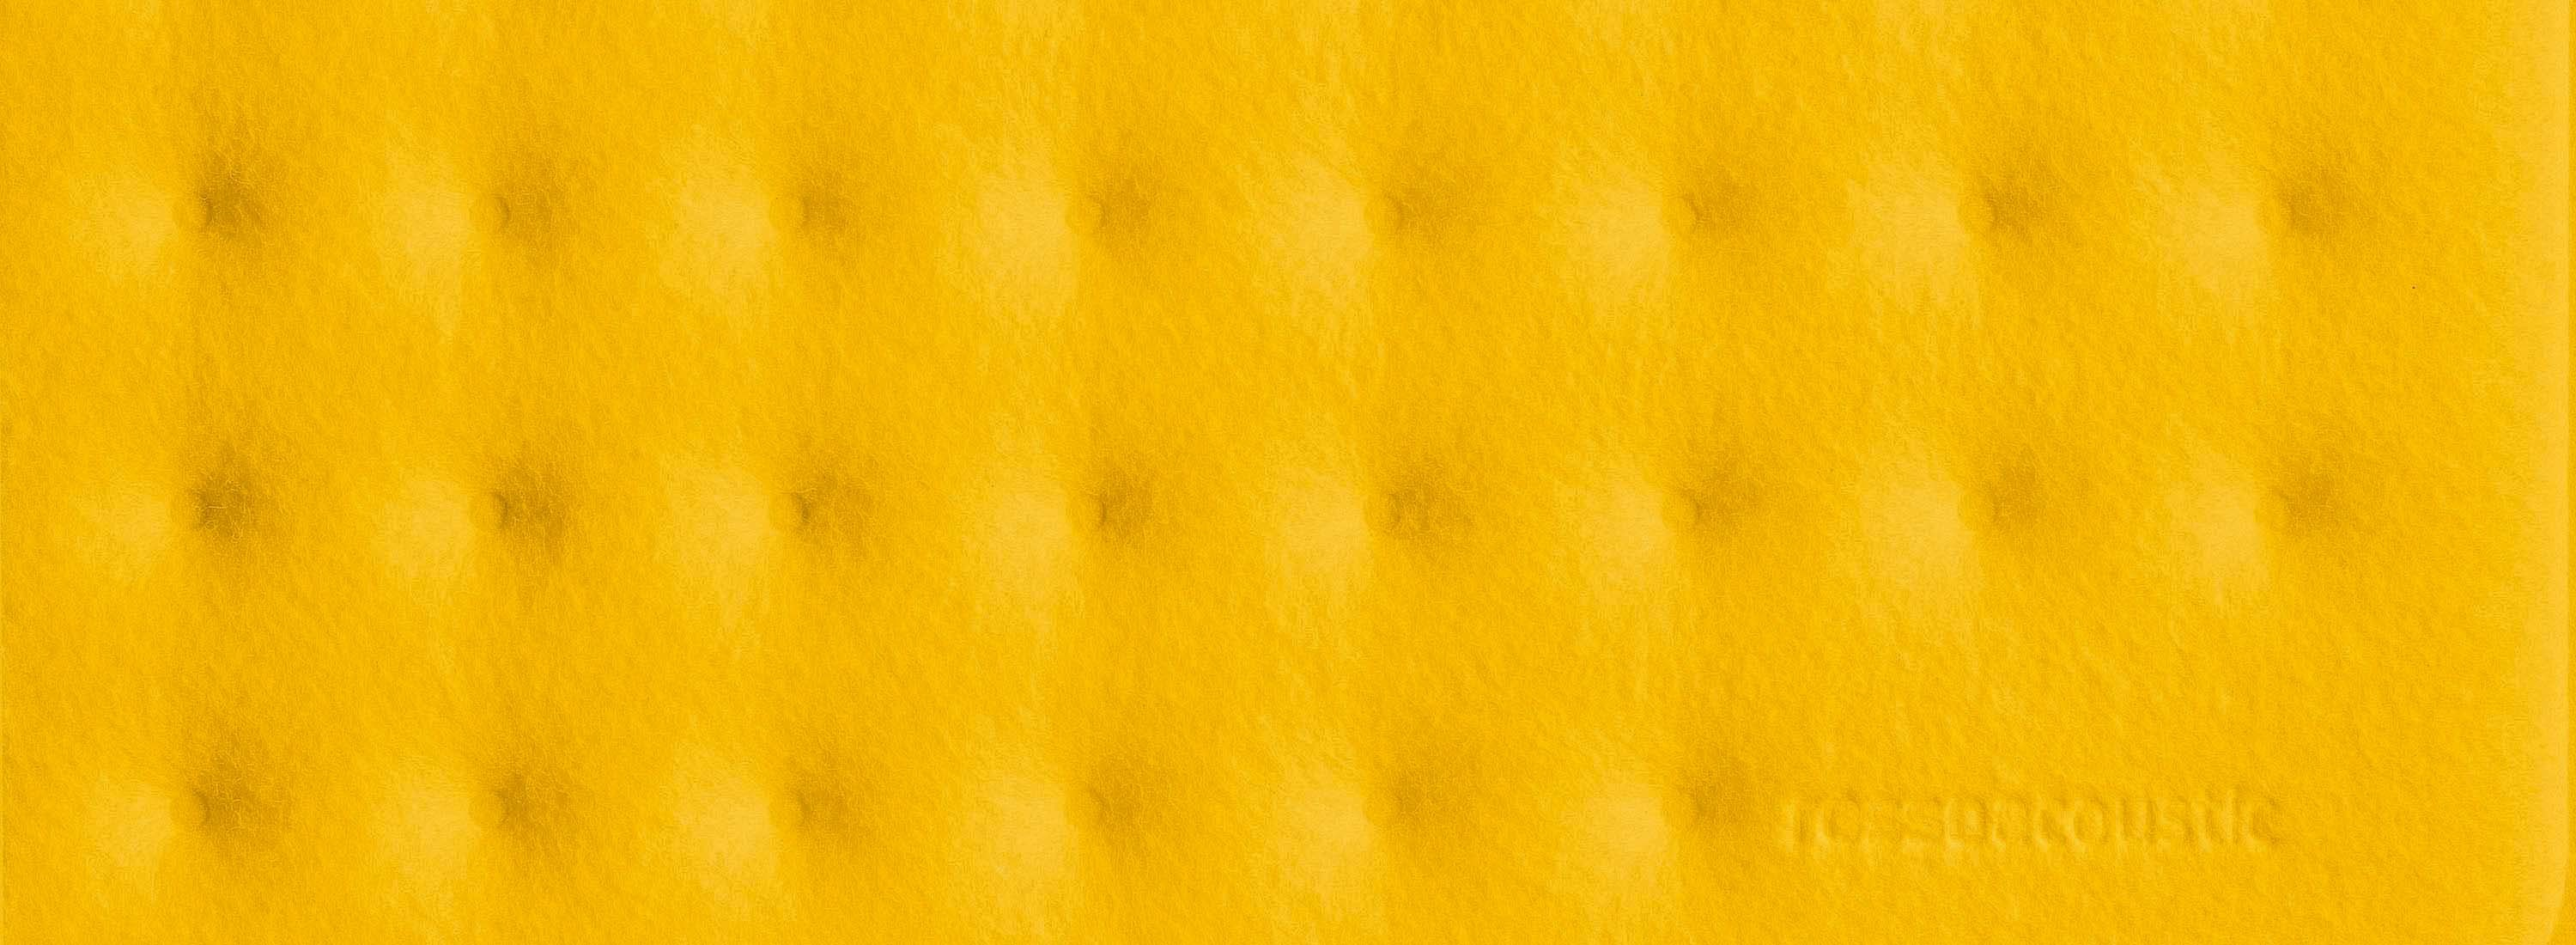 Rossoacoustic PAD Q 1200 Basic, 1200 x 1200 x 25 mm, yellow field